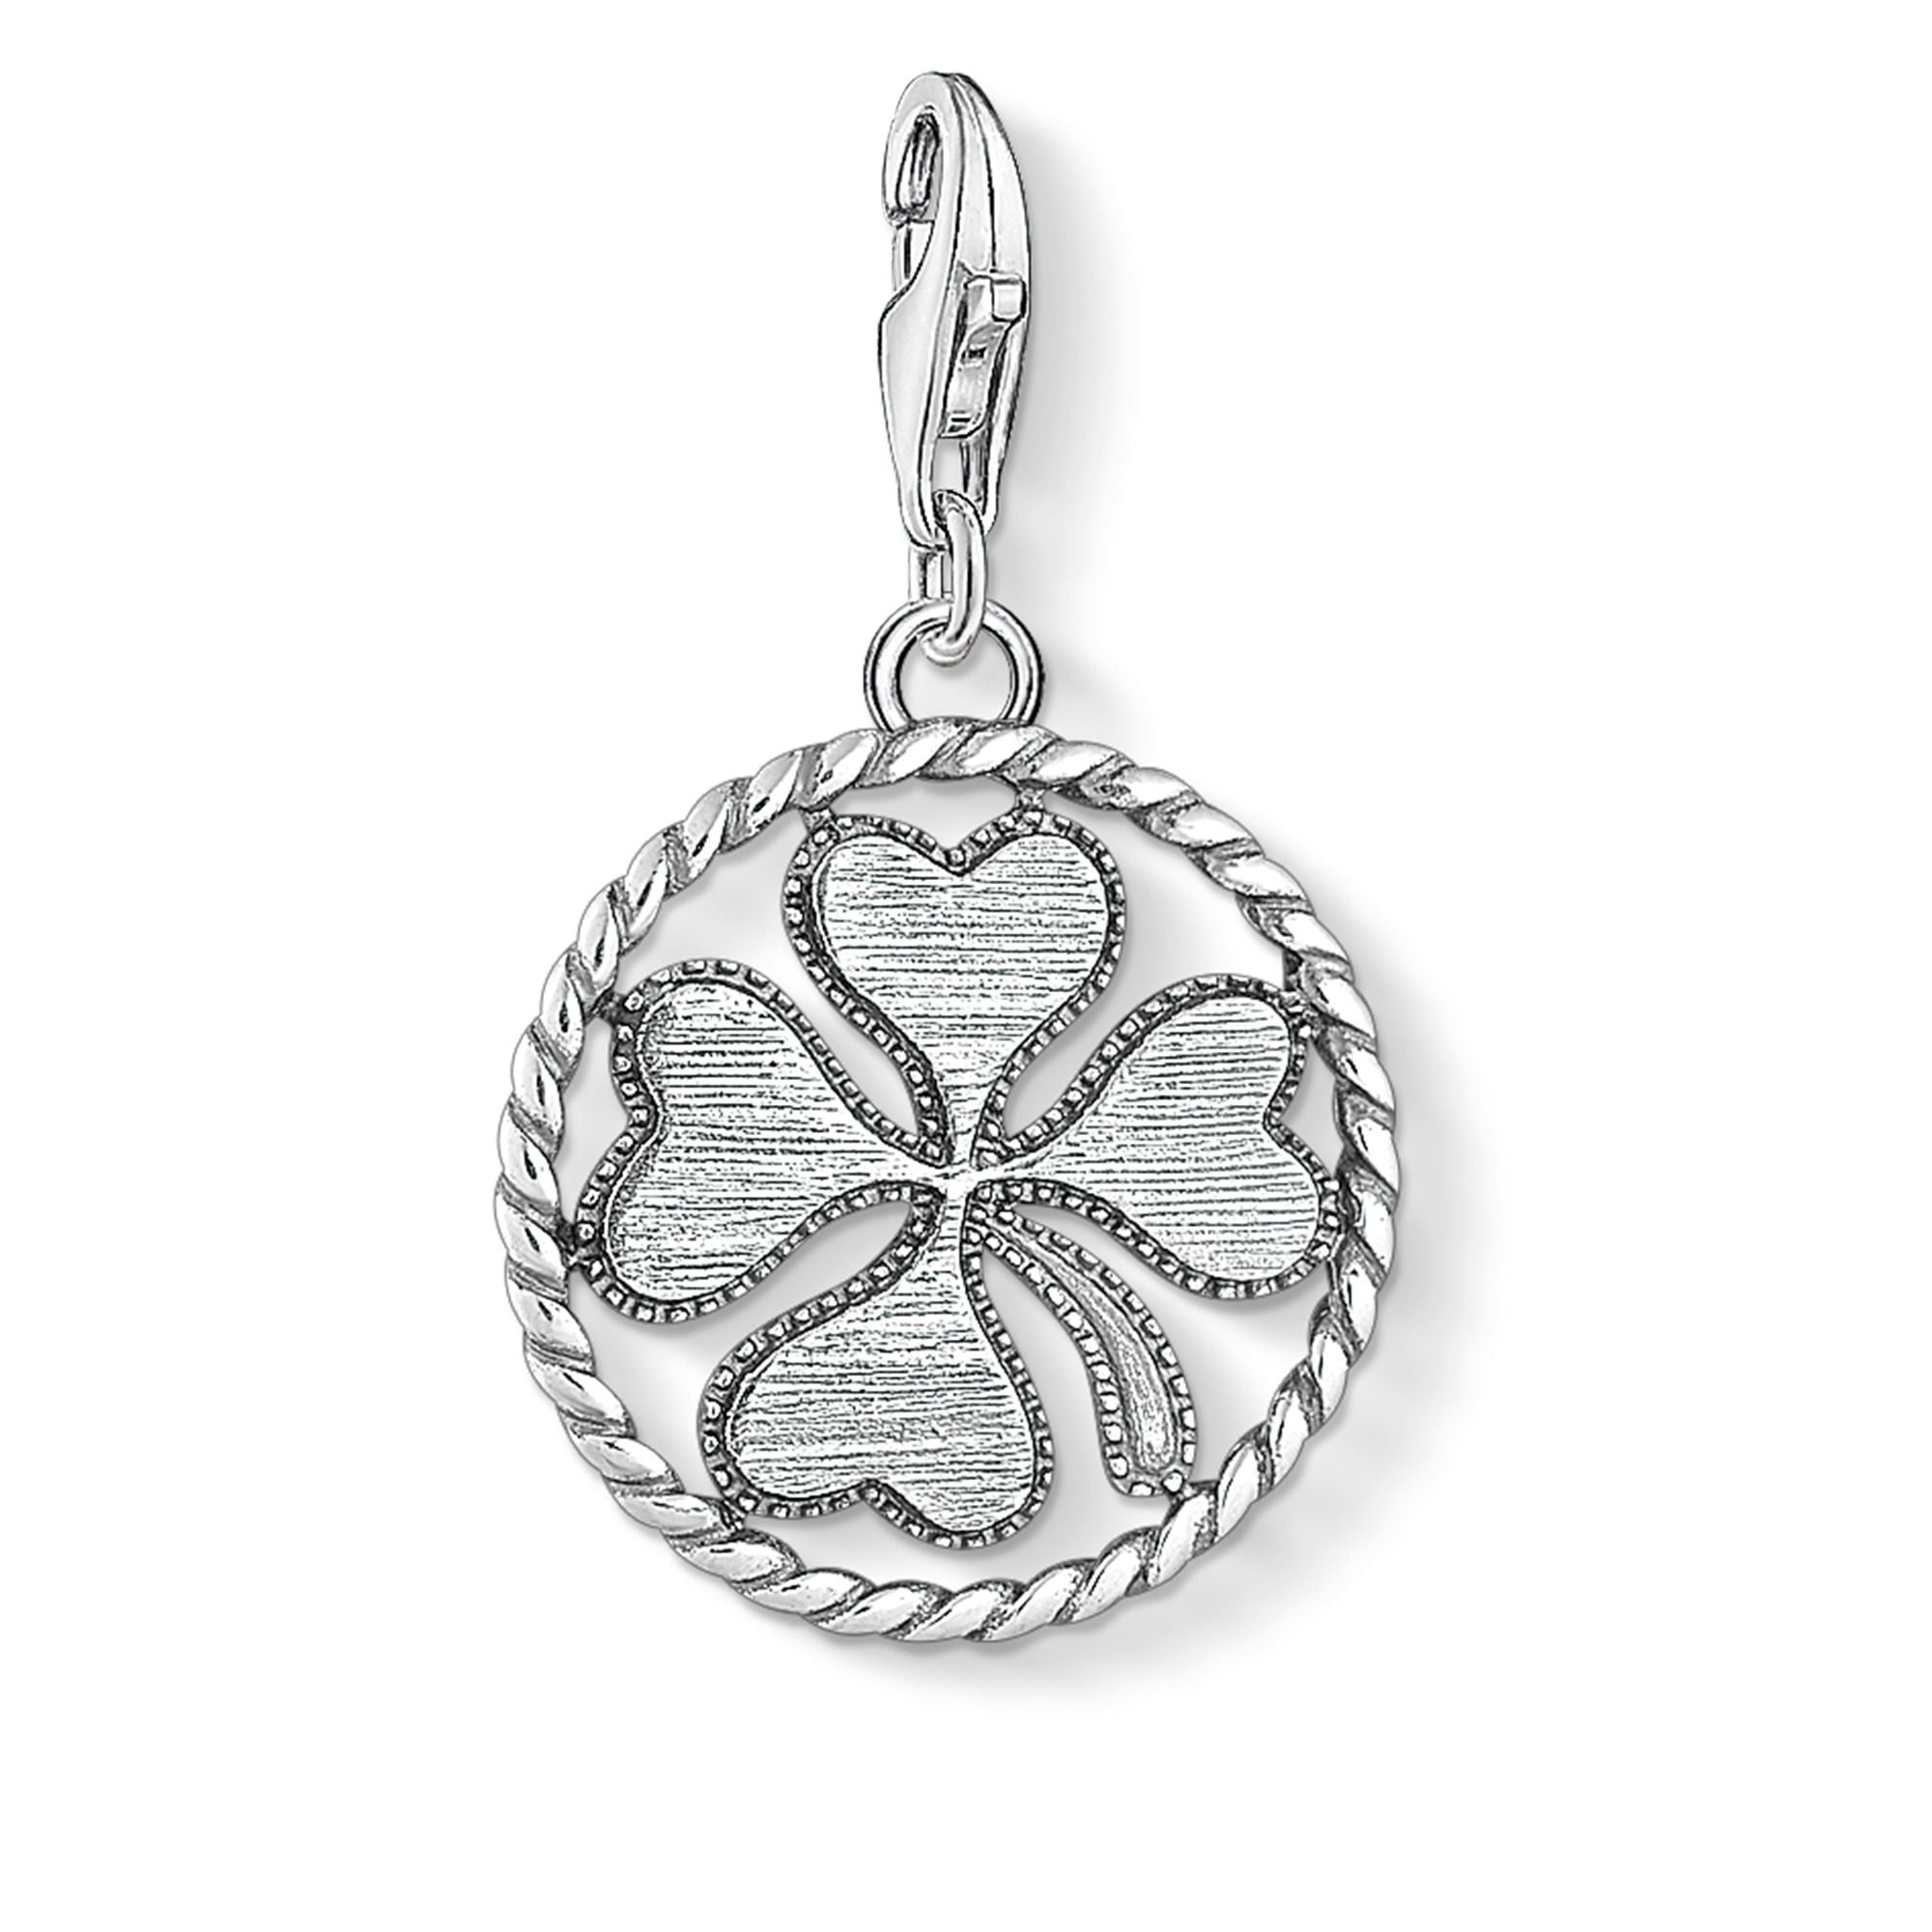 Thomas Sabo Charm Club Disc Cloverleaf 1759-637-21